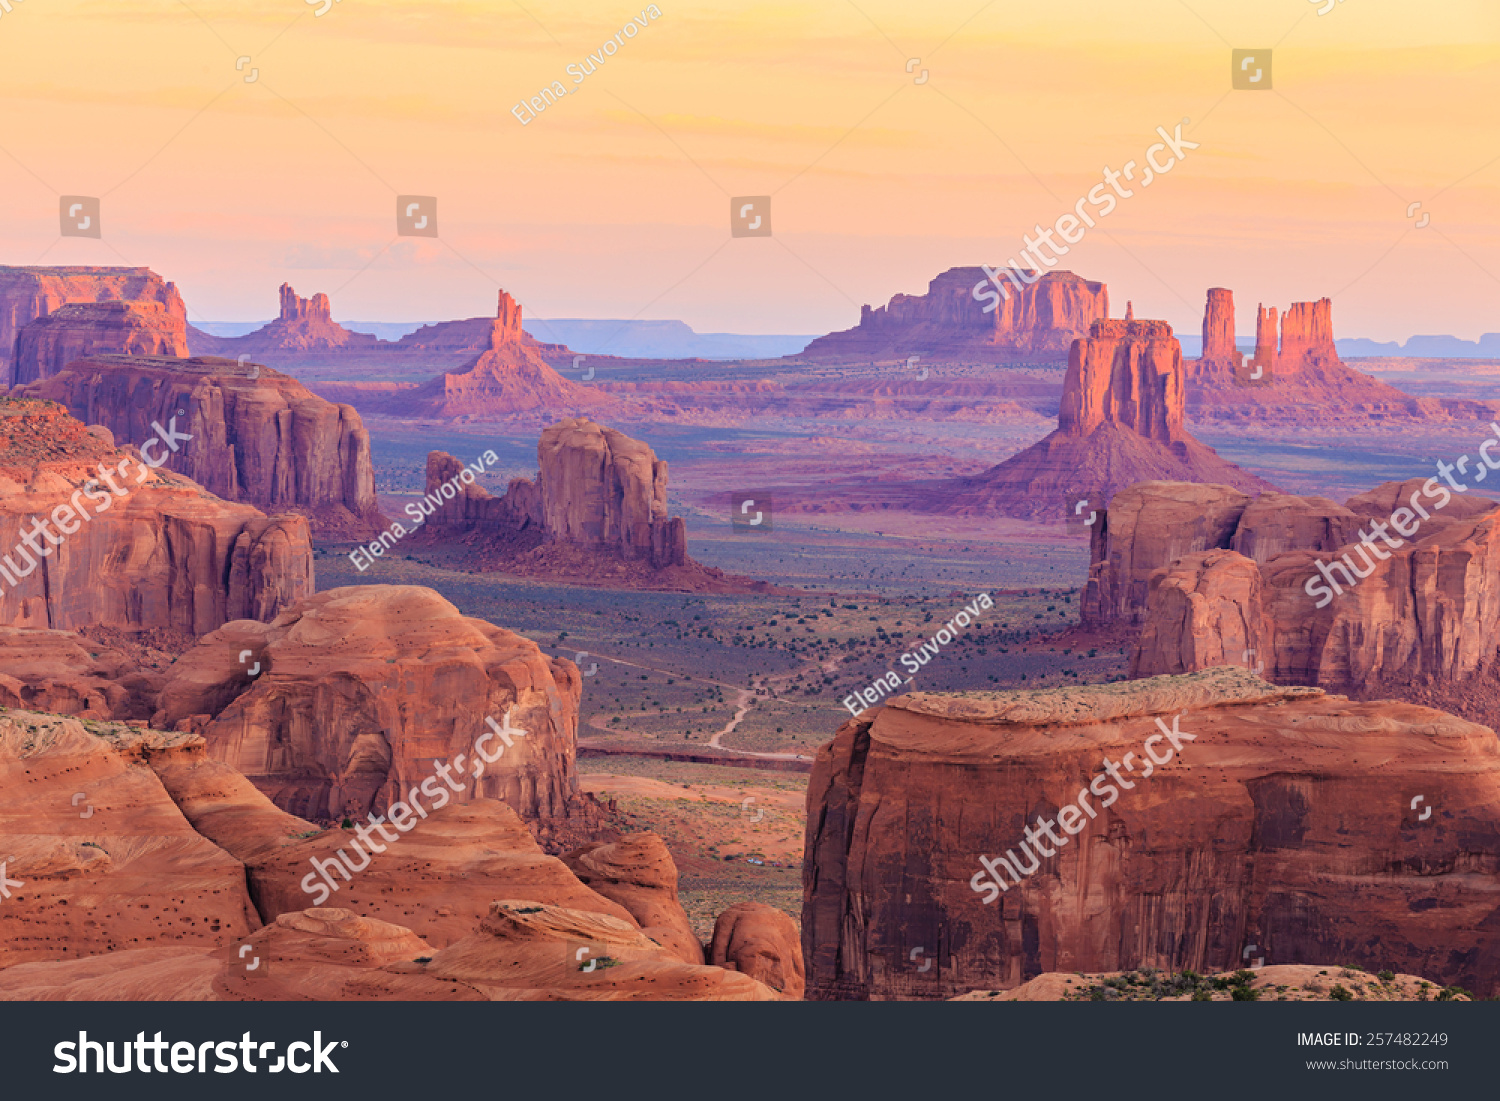 Sunrise Hunts Mesa Monument Valley Arizona Stock Photo